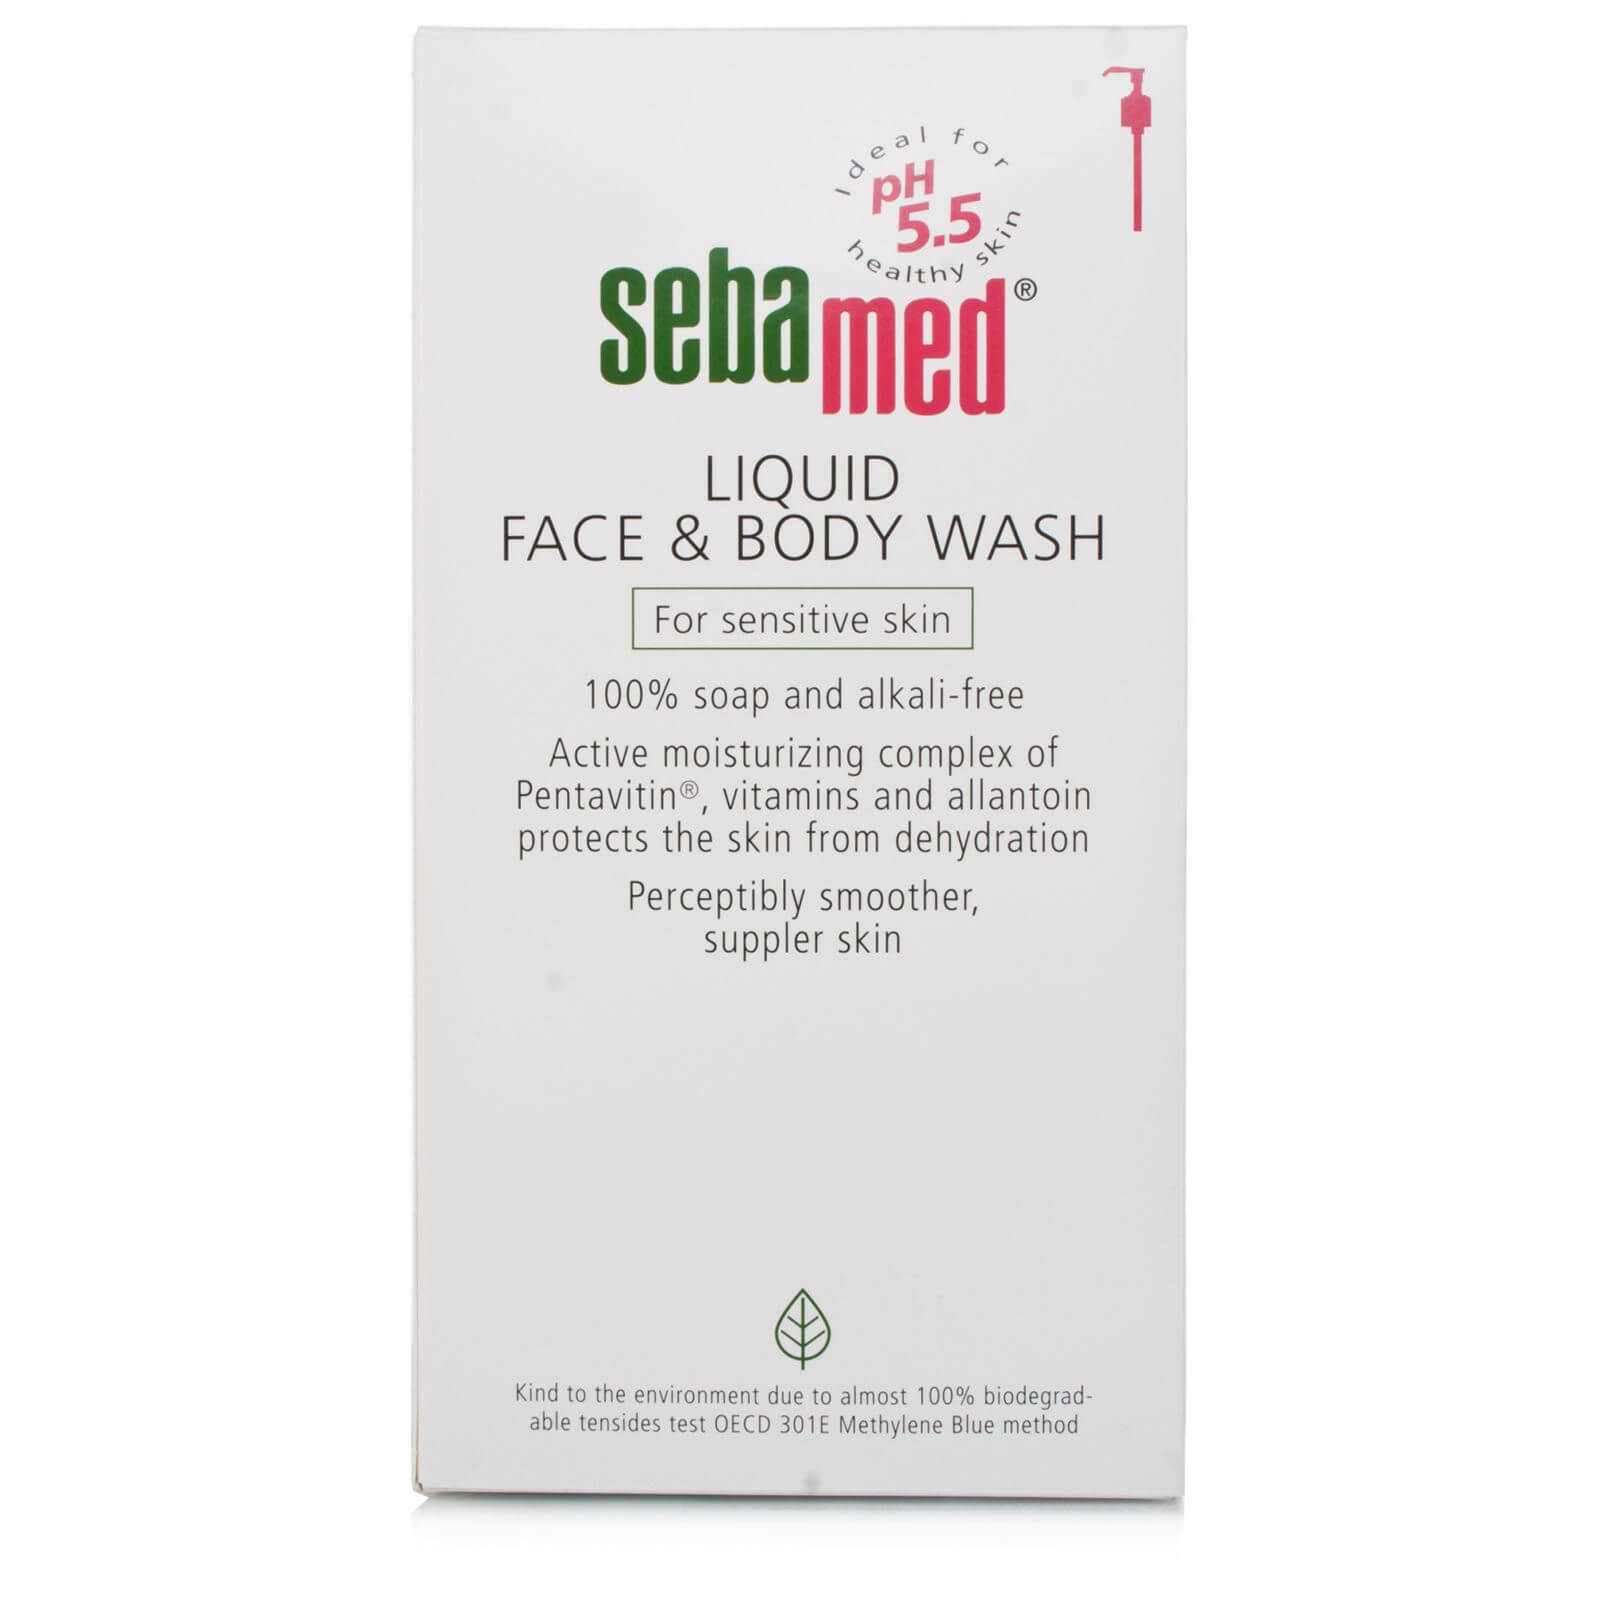 Sebamed Liquid Face and Body Wash Face and Body 1000ml